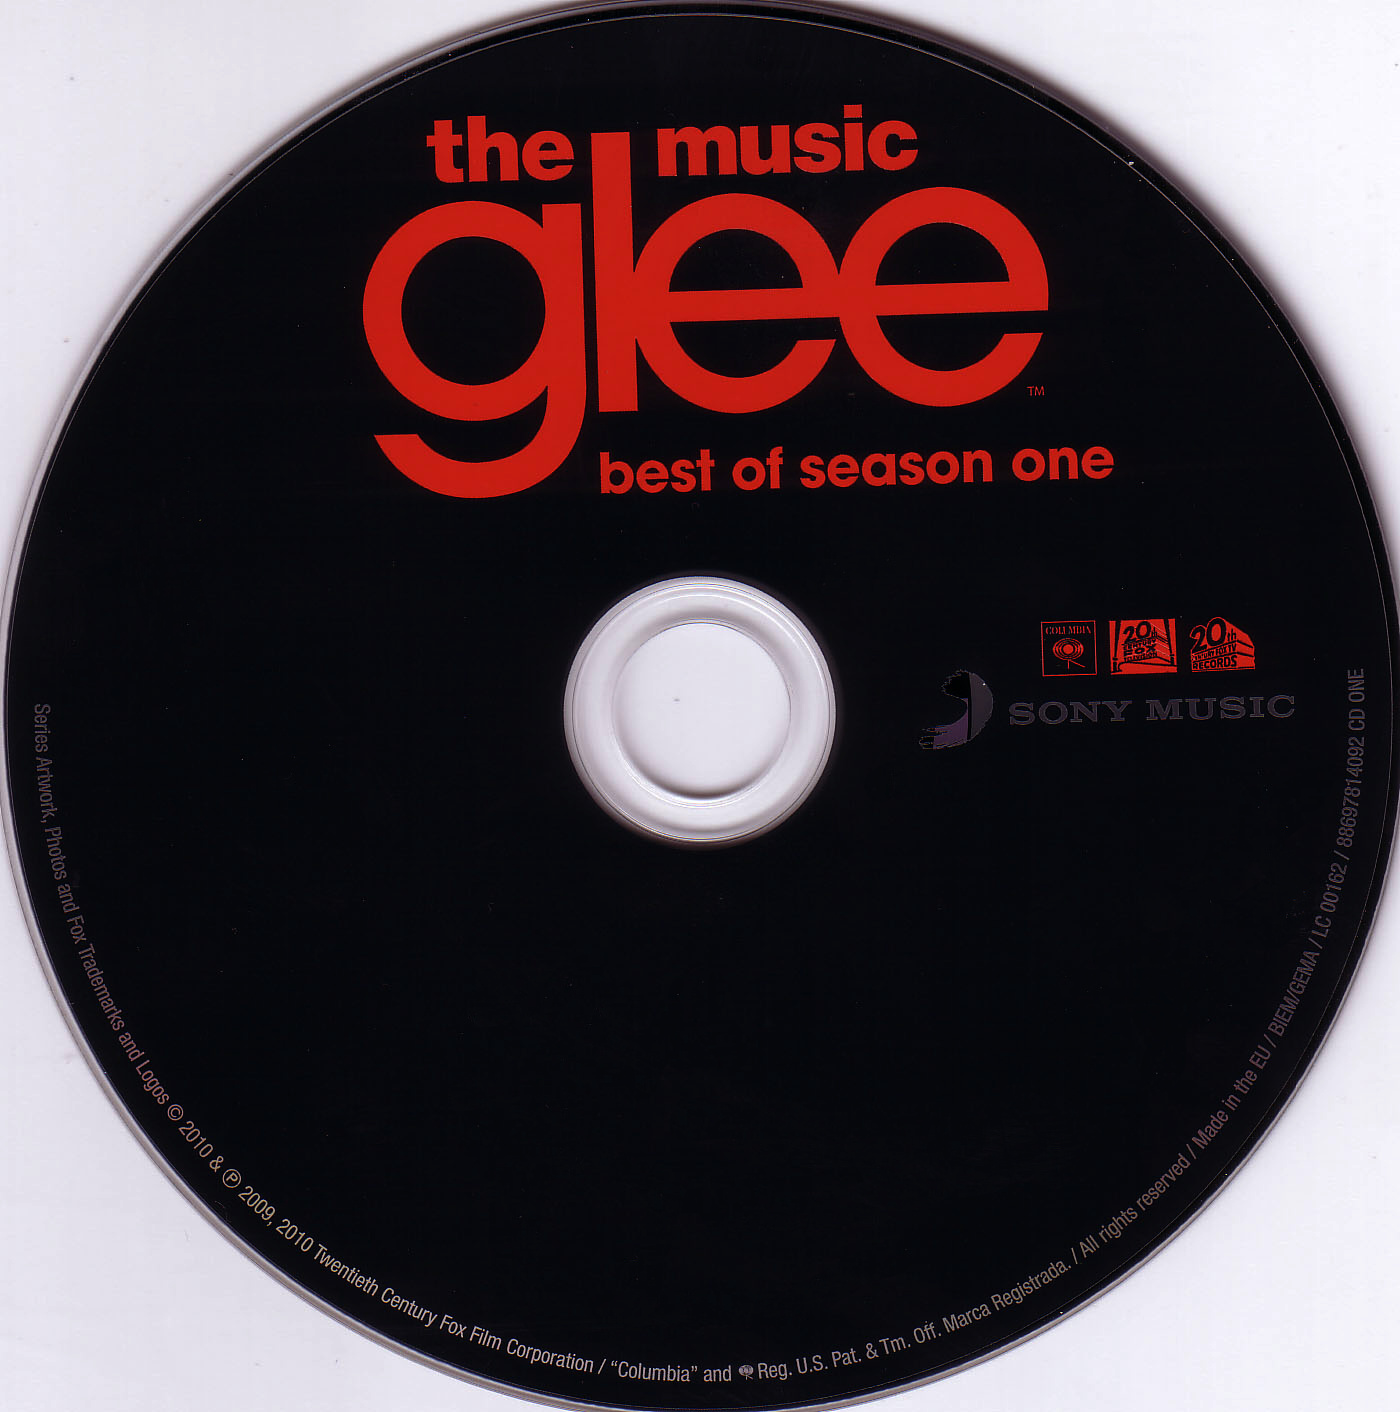 Glee Cast - Glee The Music Best Of Season One - CD (1-2)